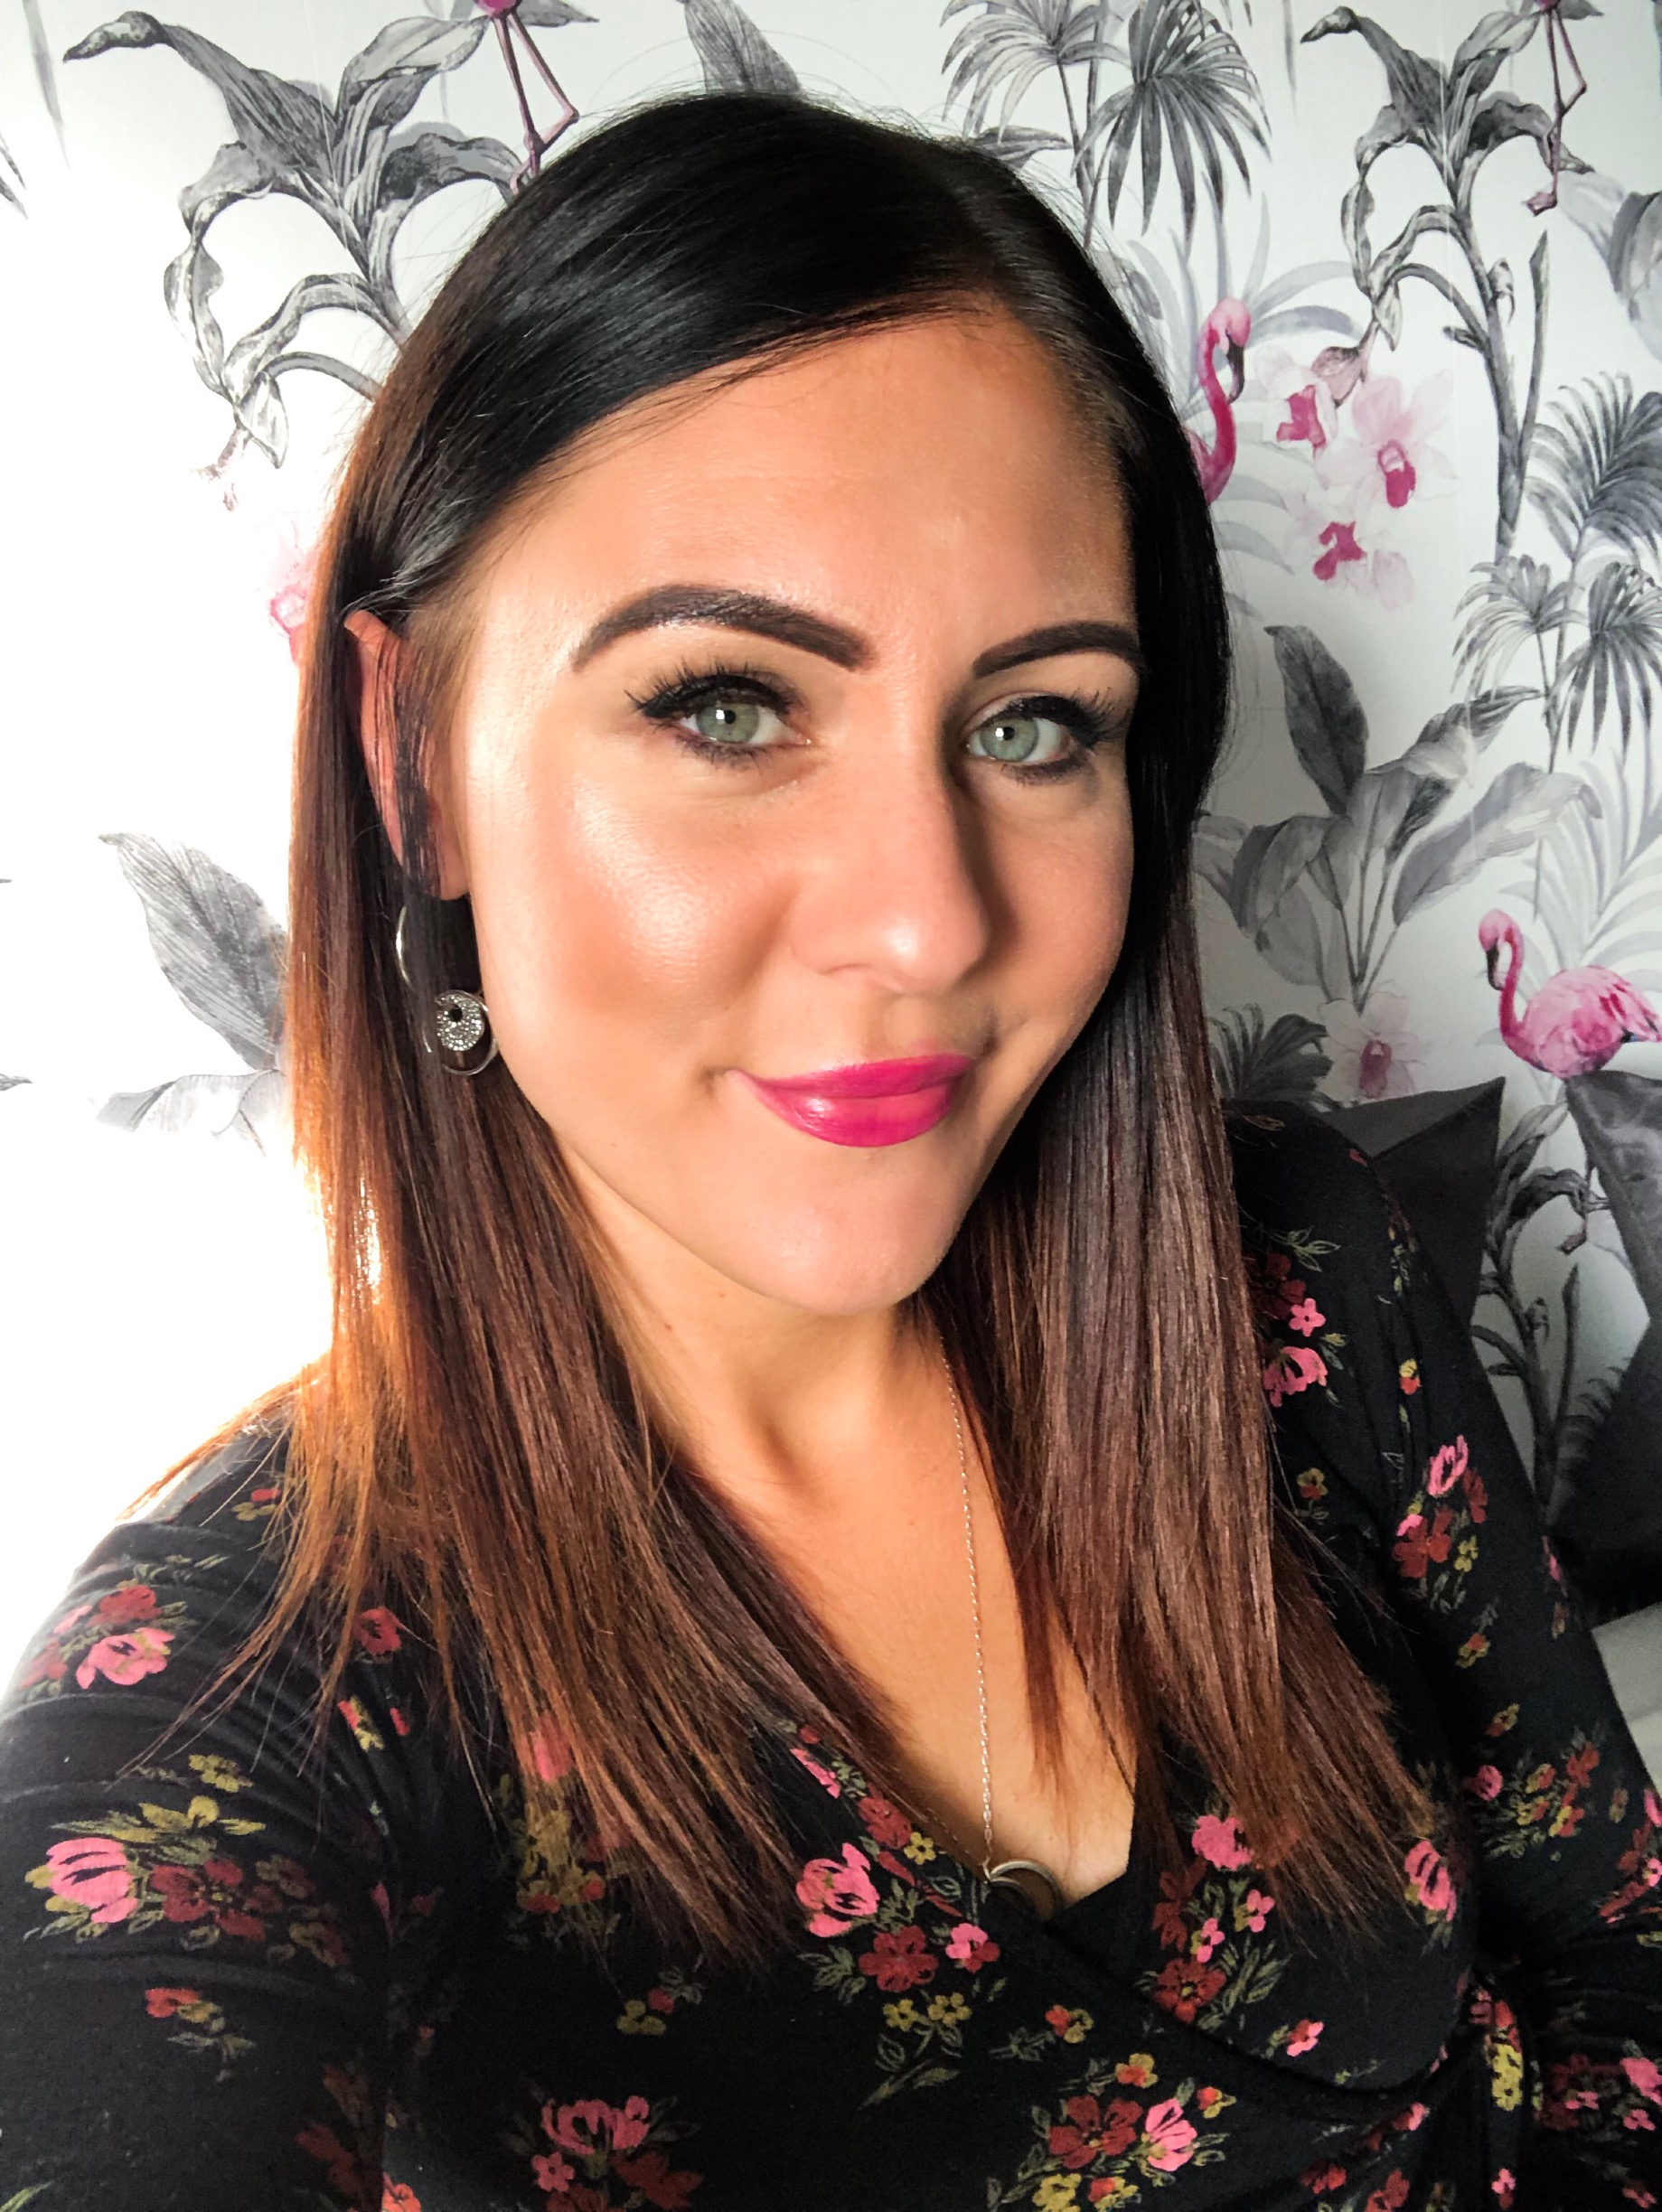 a close up of me with my brown hair down. I am wearing full make up and pink lipstick and have a flowery black top on. I am standing in front of grey wallpaper with flamingos on.